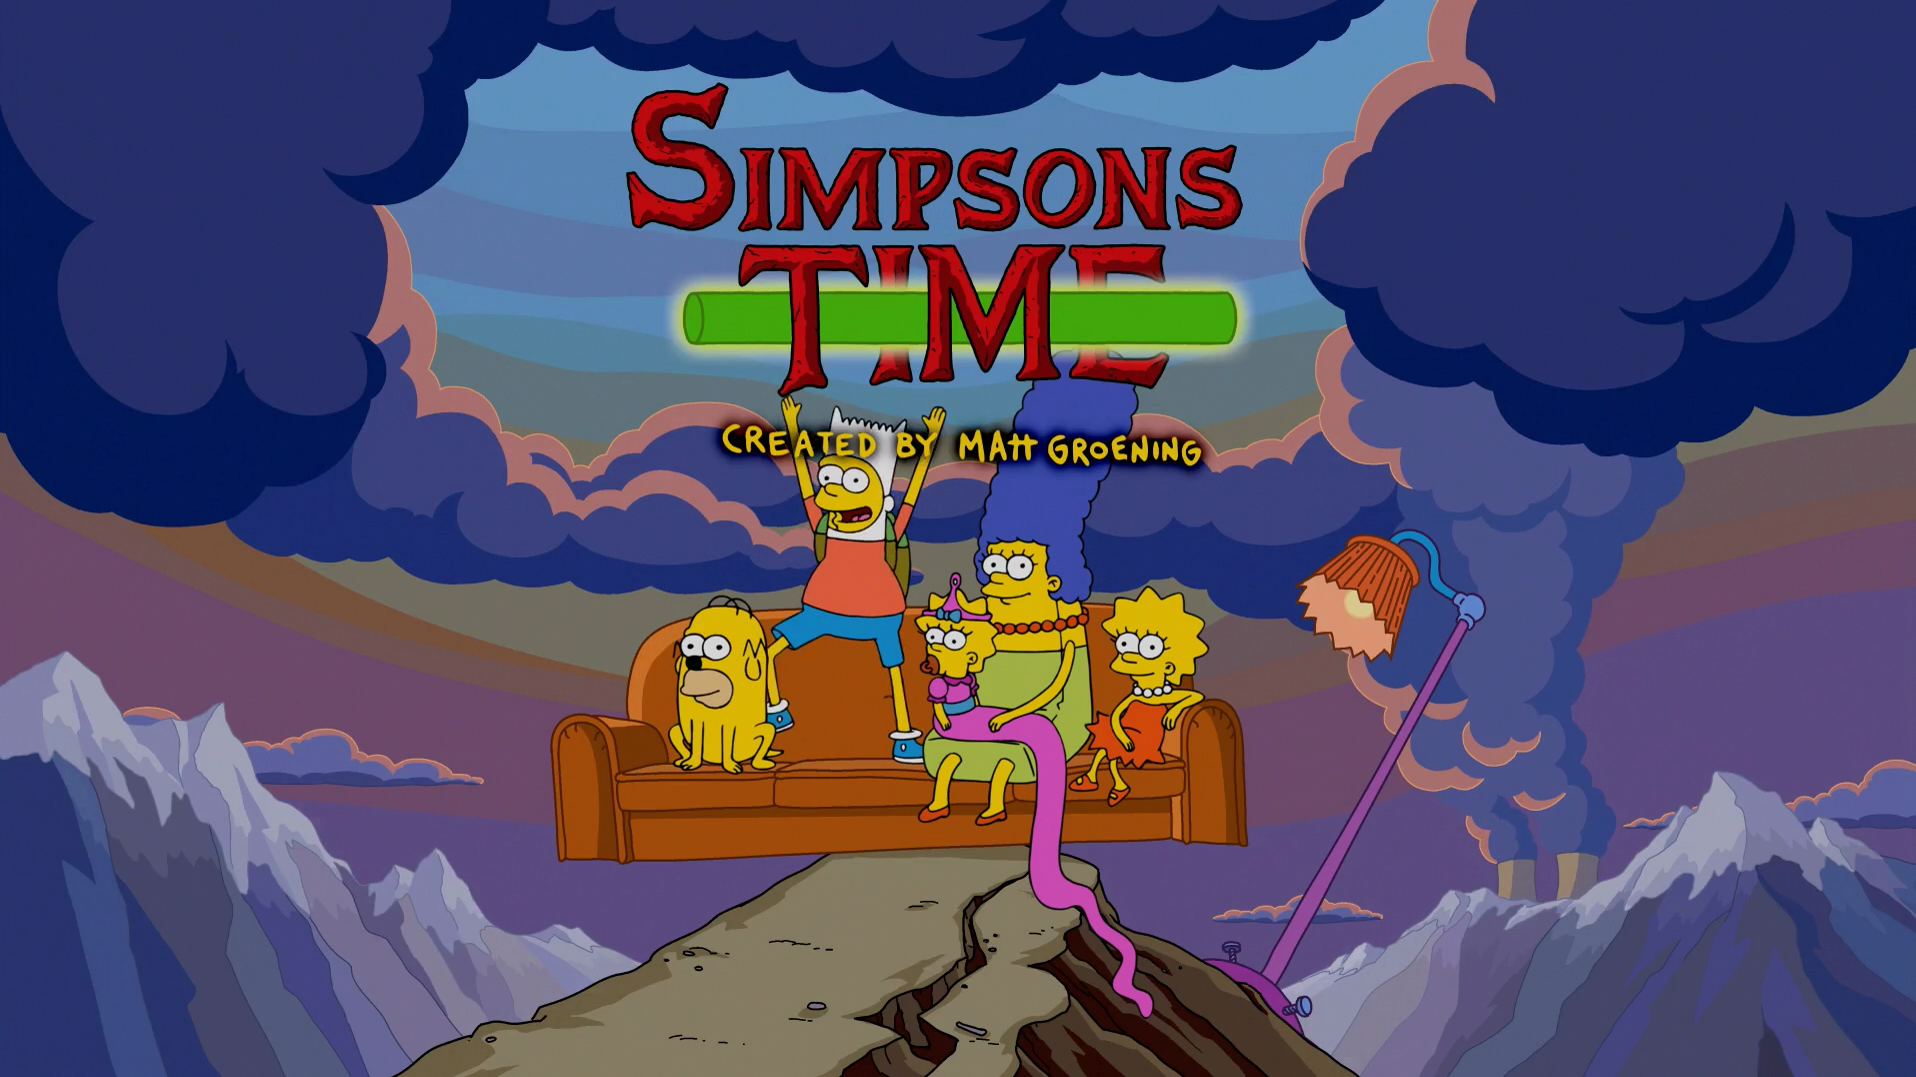 Simpsons Time couch gag.png